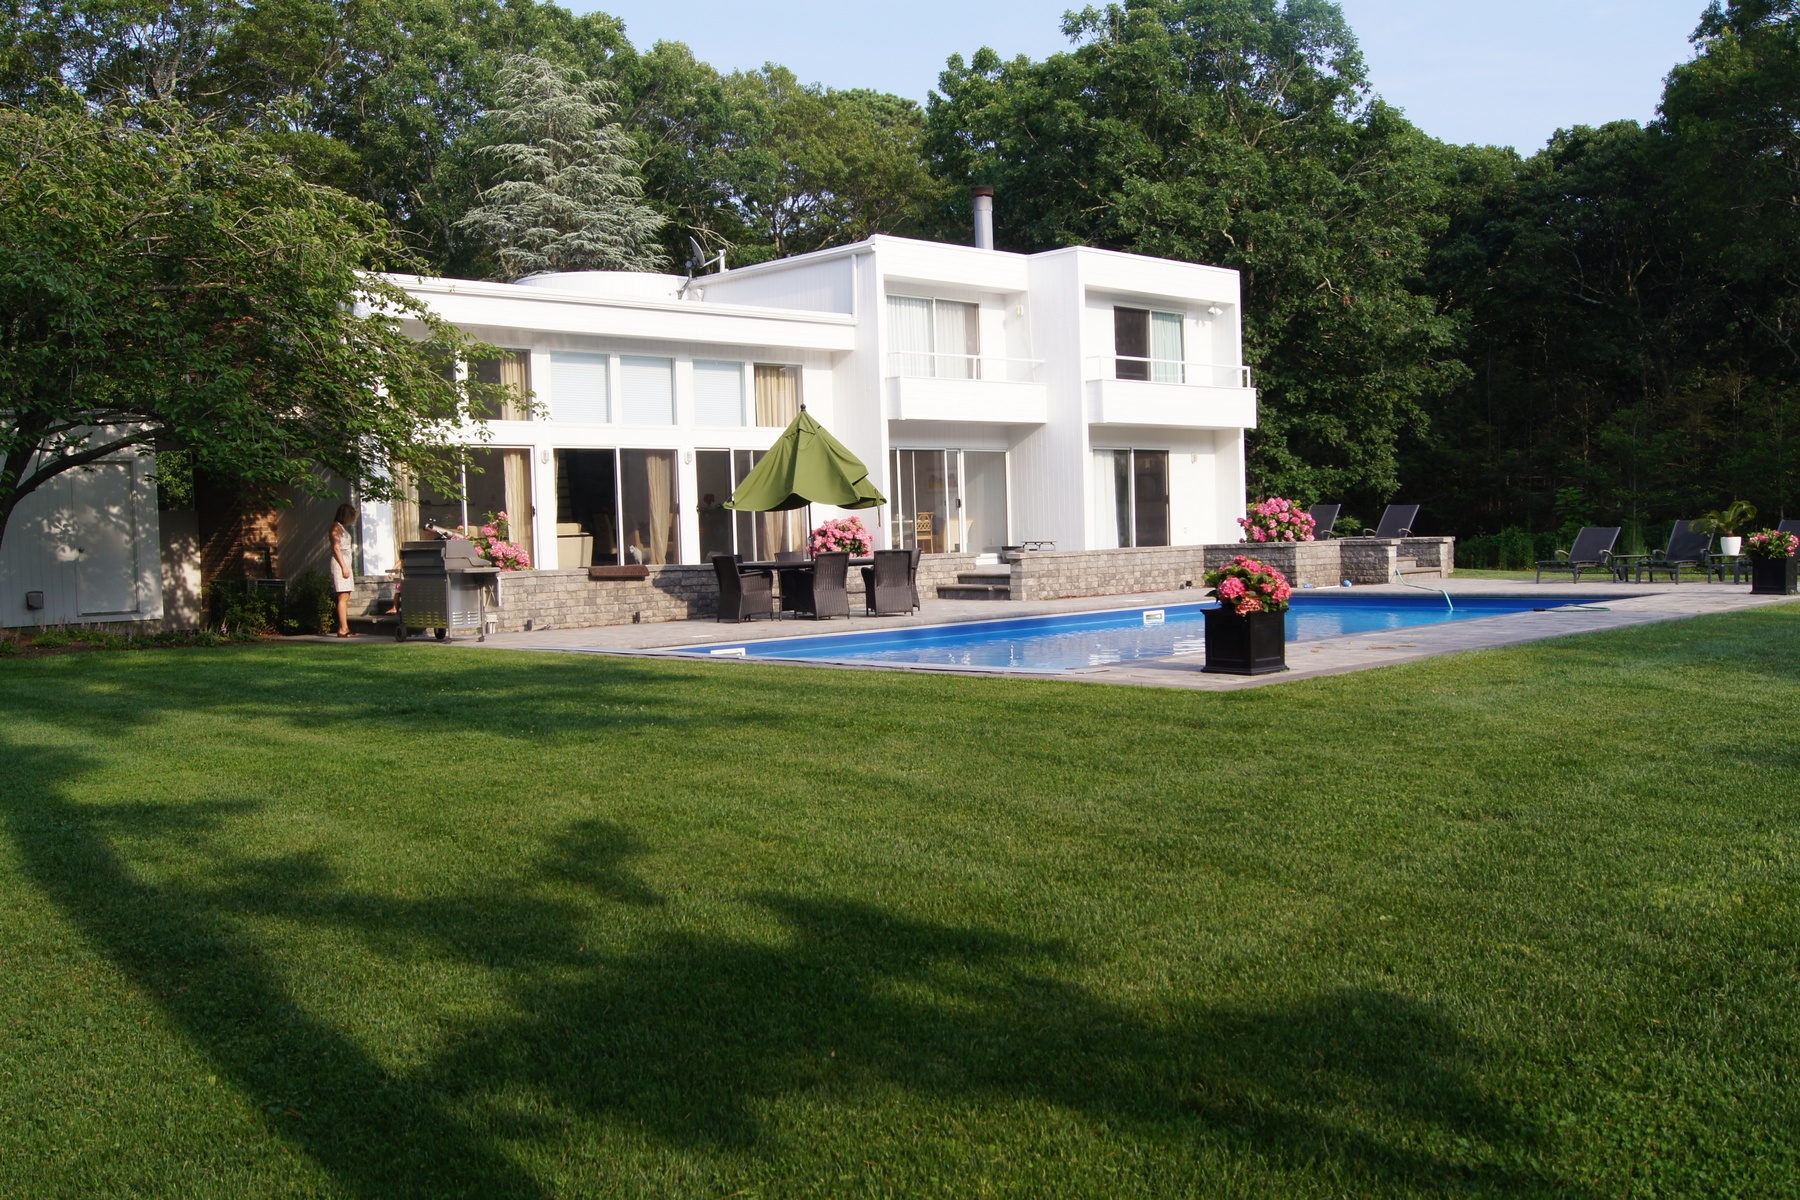 Single Family Home for Sale at Great Contemporary with Pool 10 Fox Hollow Drive East Quogue, New York, 11942 United States